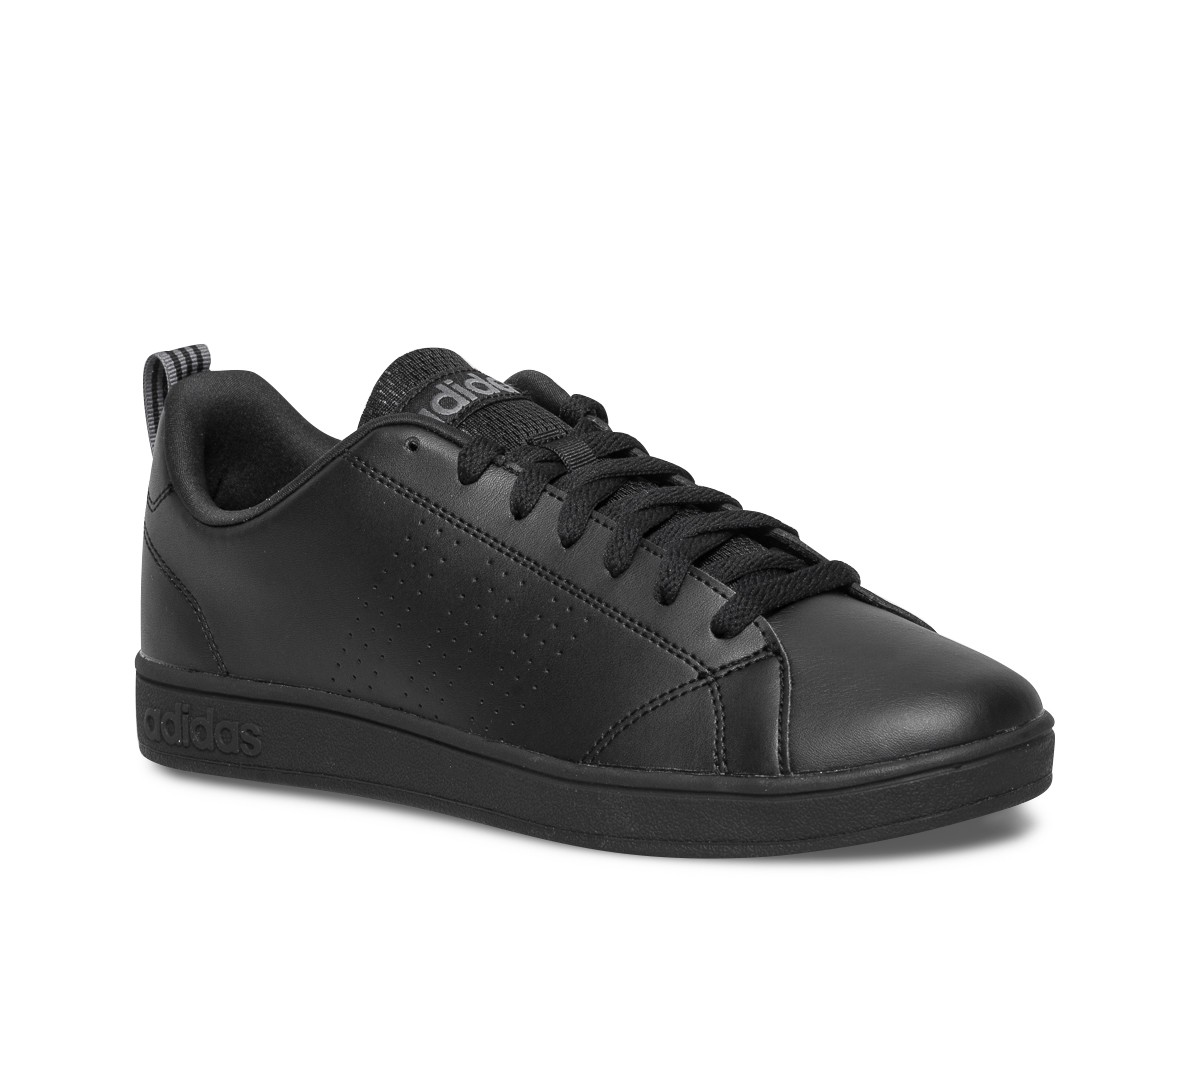 sports shoes e60d3 7bf19 basket homme adidas noir